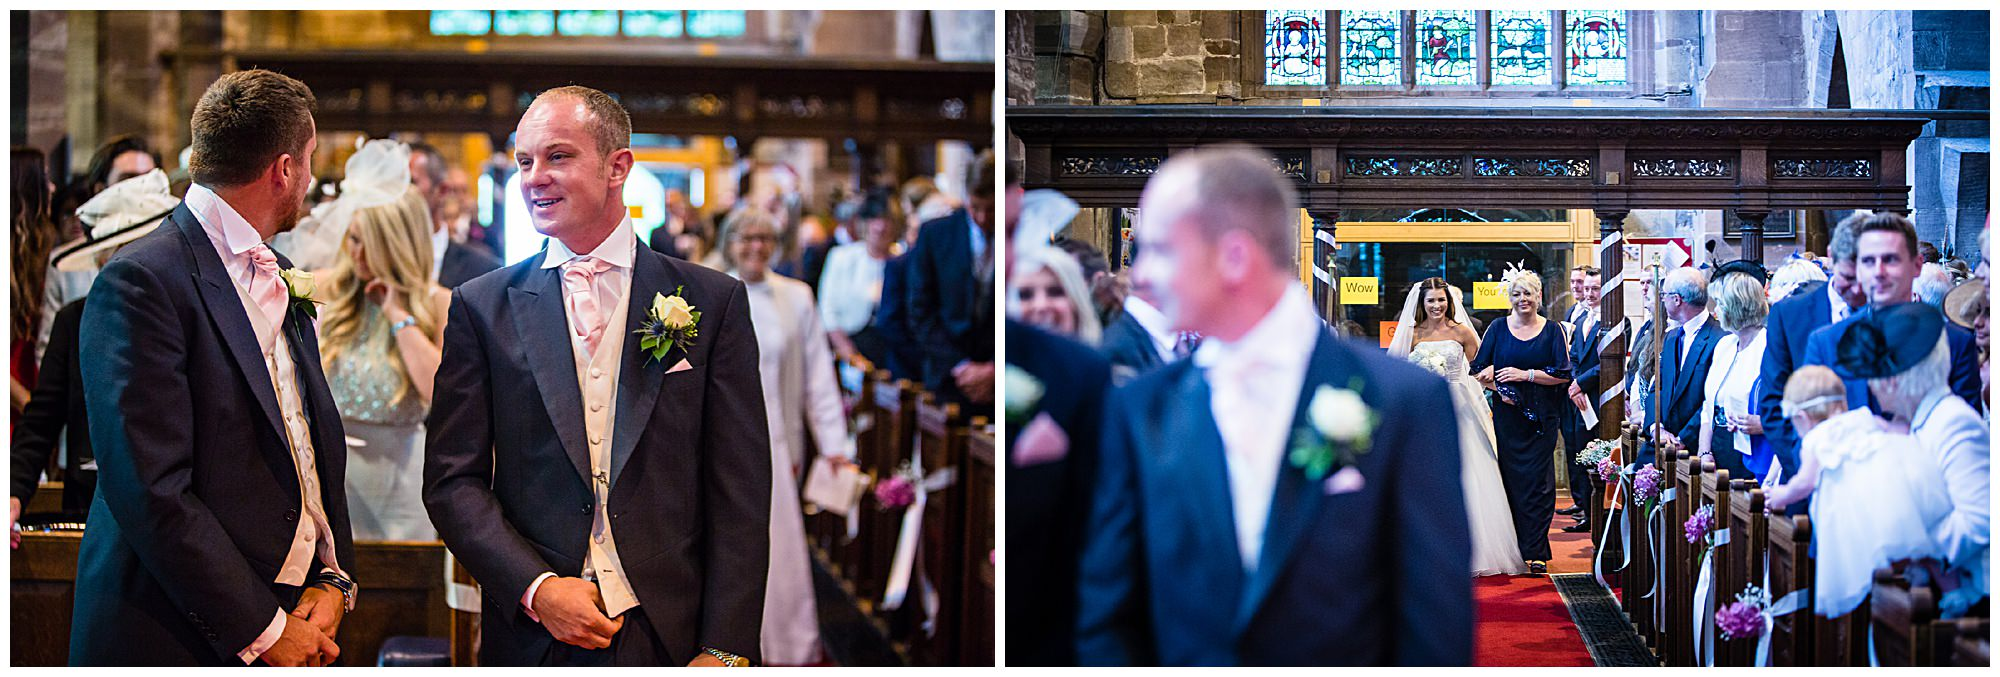 nervous group waiting at the alter St James' Church Audlem Wedding Photography